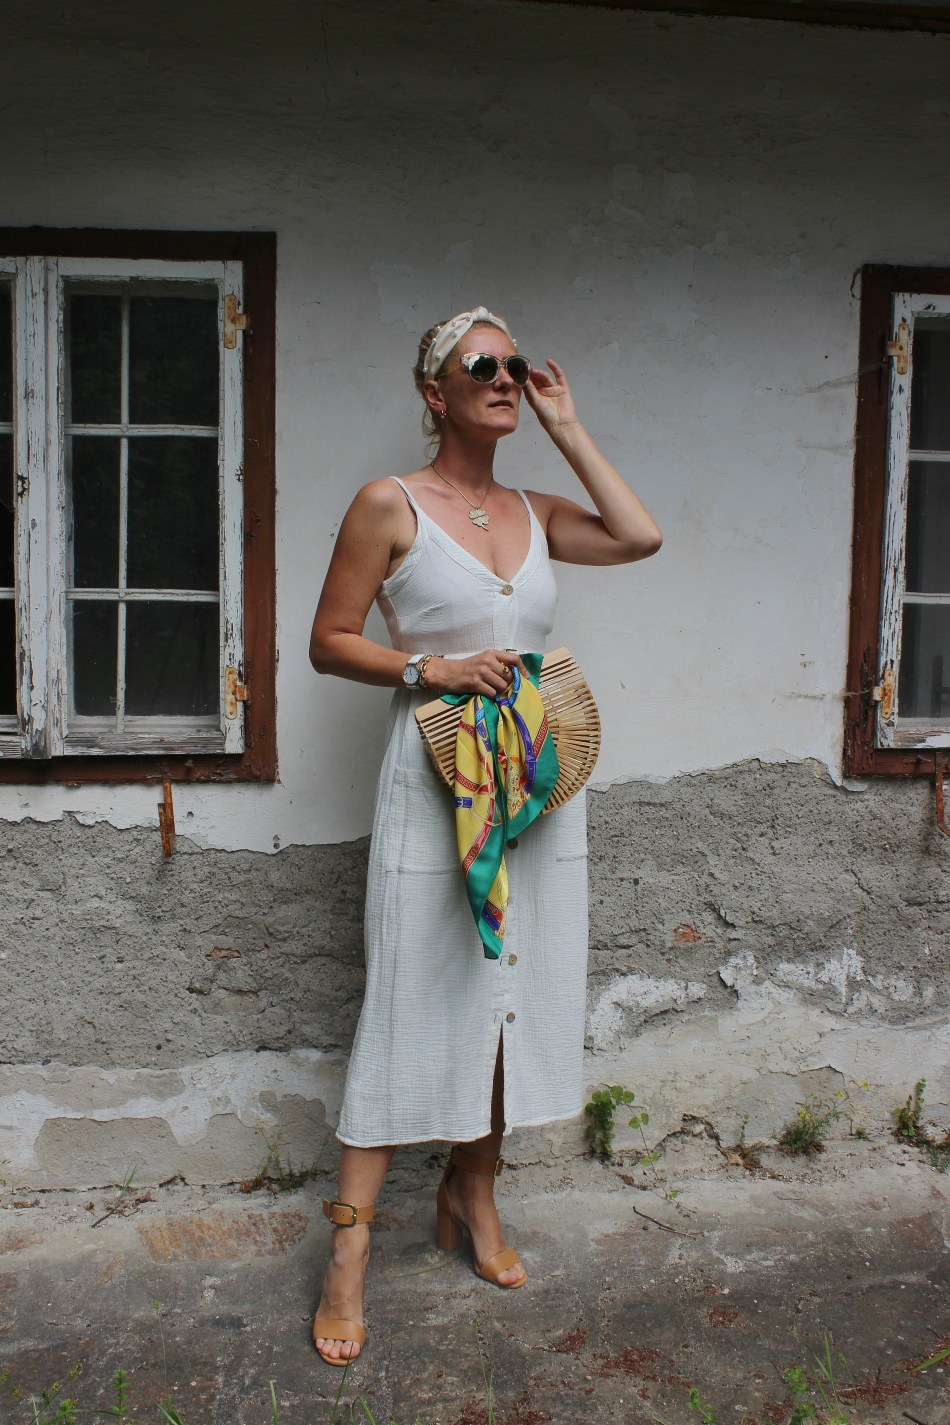 Weißes Kleid Stradivarius-Sandals Gino Rossi CCC Shoes and Bags-Cultgaia Bag-carrieslifestyle-Sommerlook-blogger-bloggerstyle